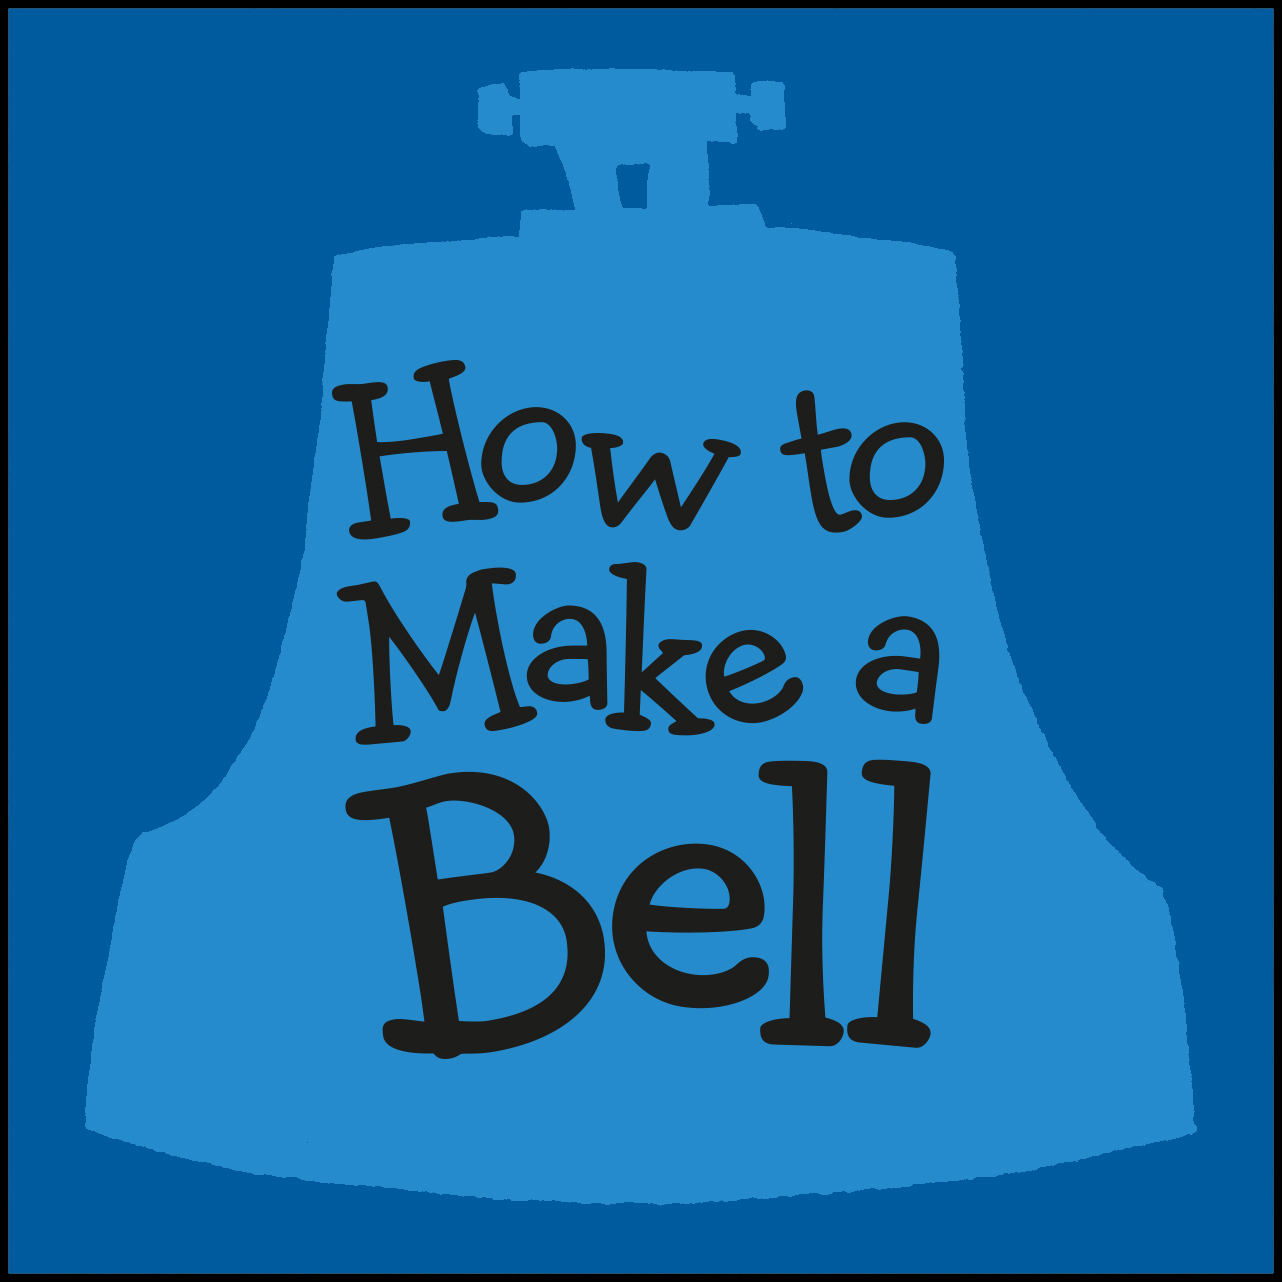 Link to 'How to Make a Bell' Video